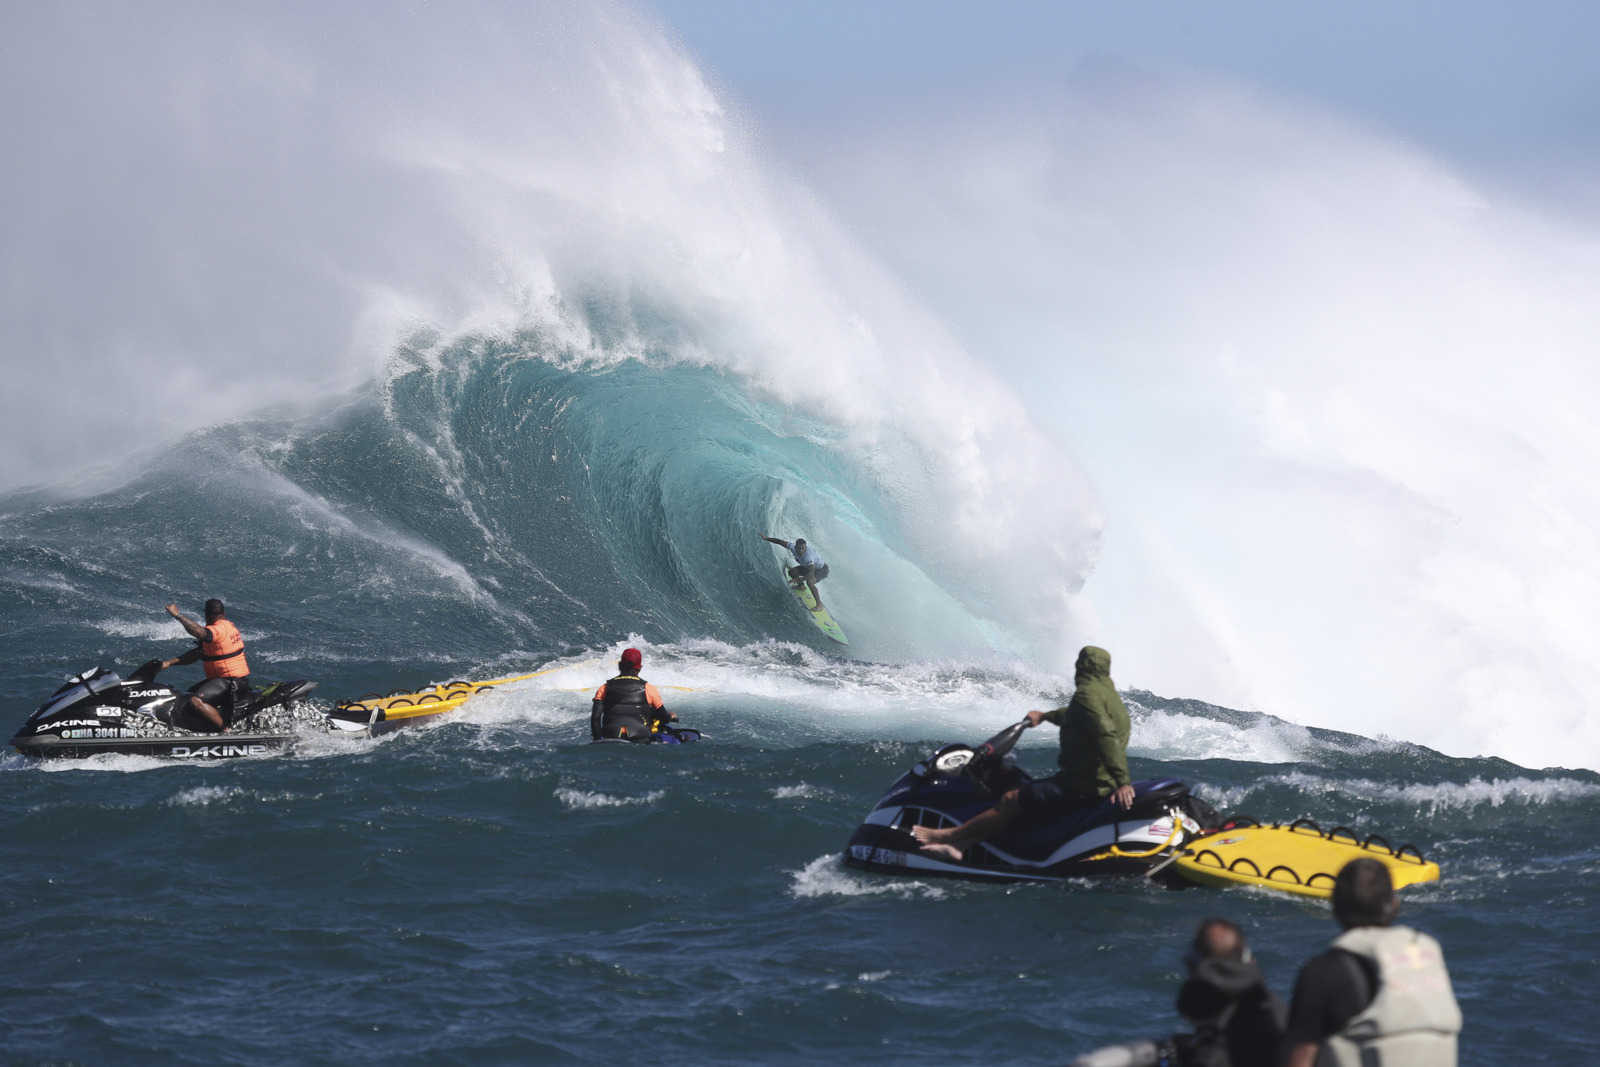 Billy Kemper Wins Jaws Challenge at Pe'ahi, Maui